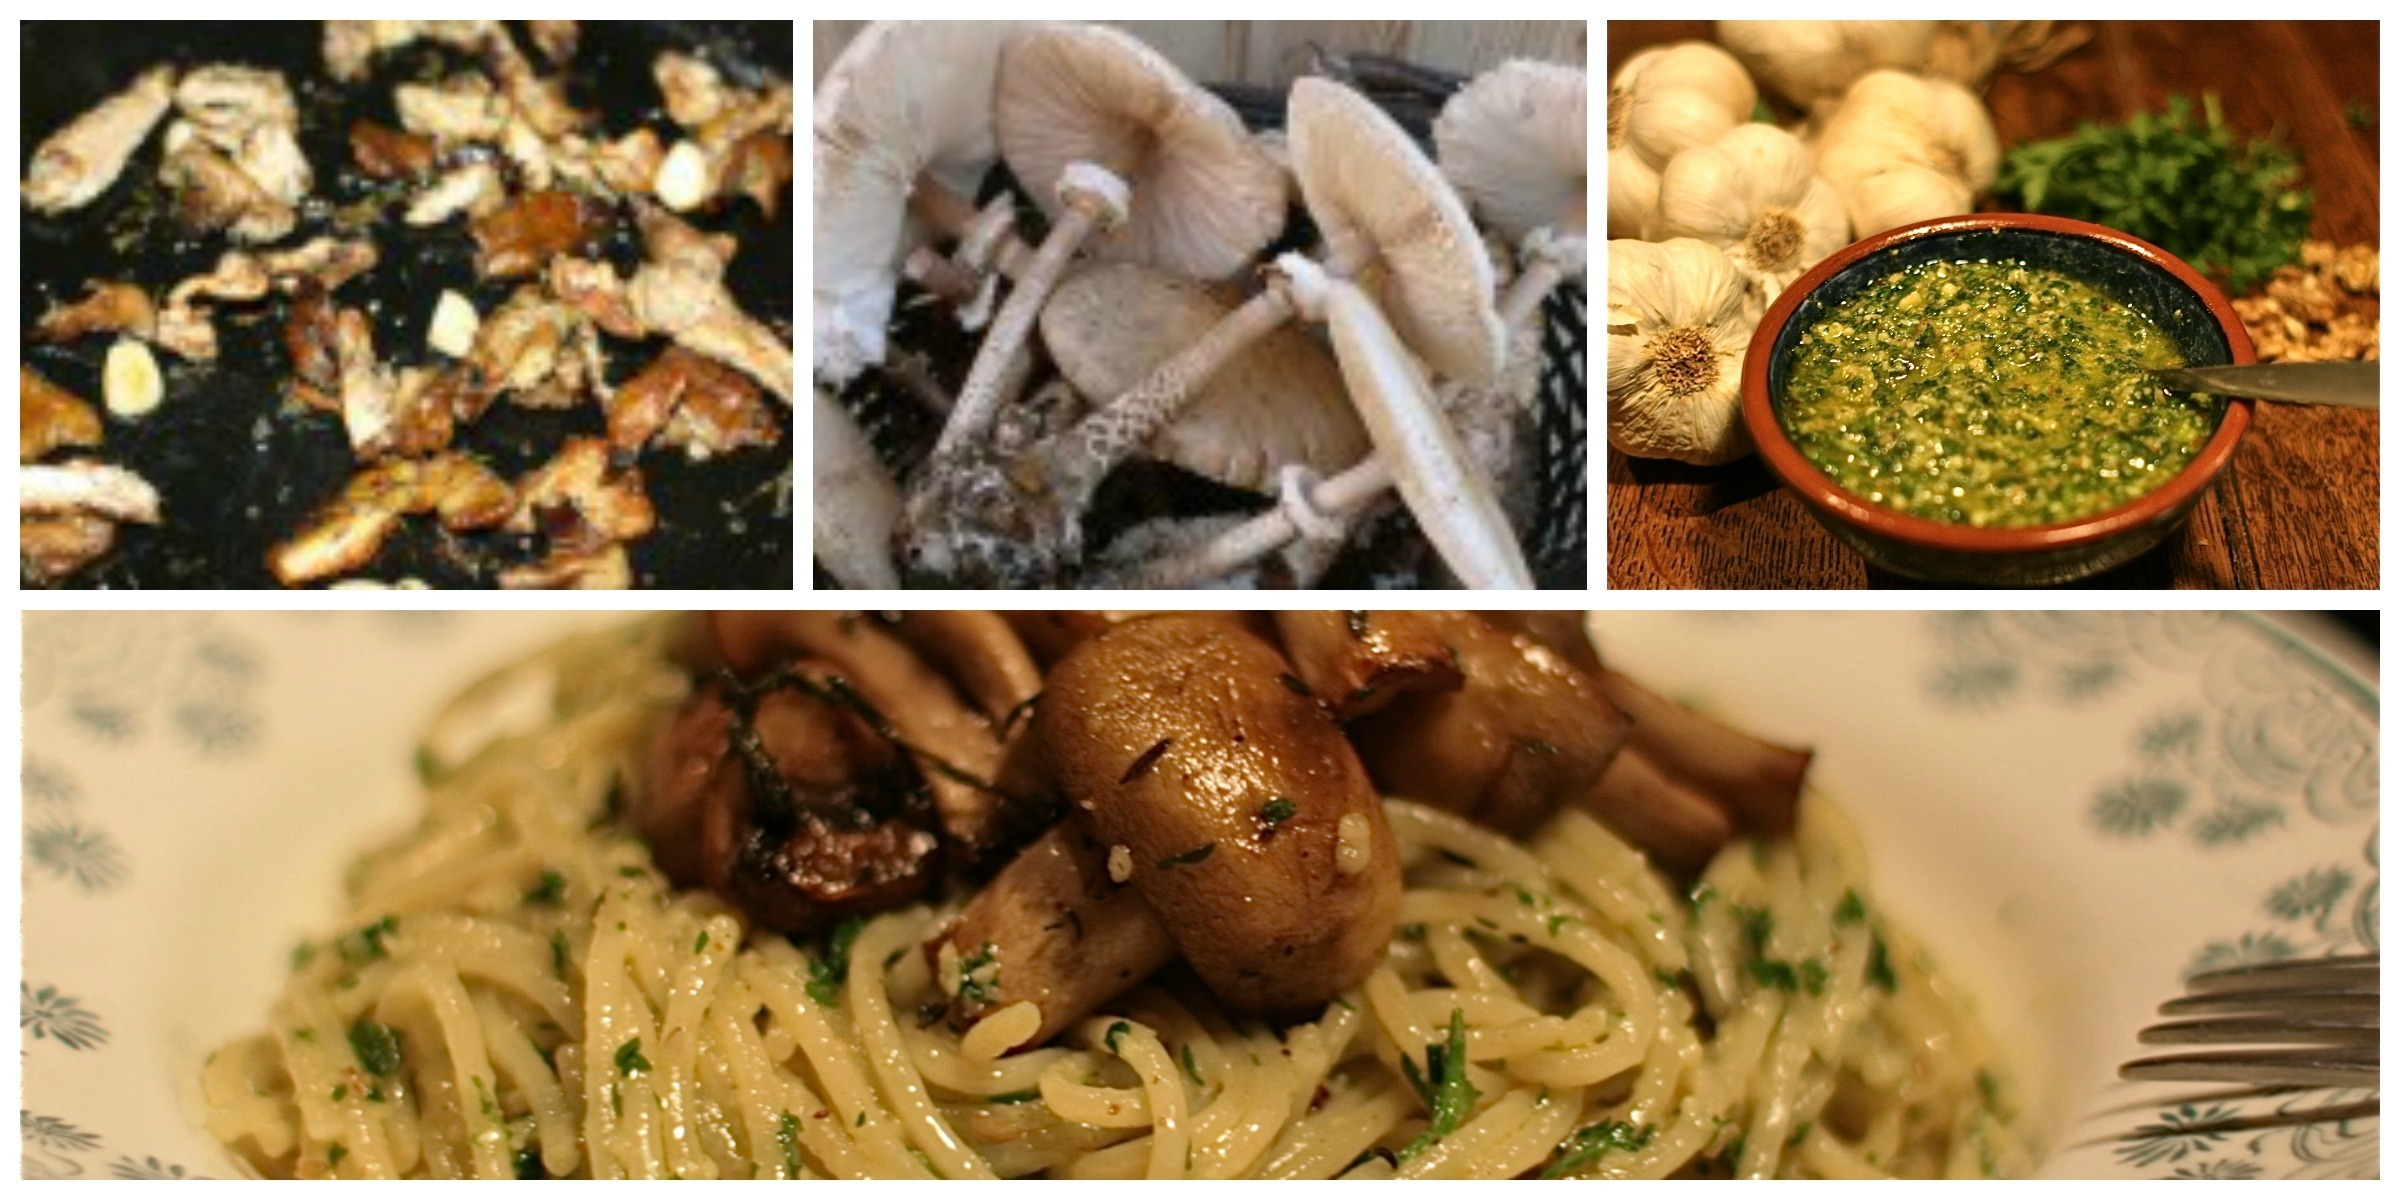 Stilton, Walnut & Parsley Pesto Spaghetti with Roasted Mushrooms (Serves 4)